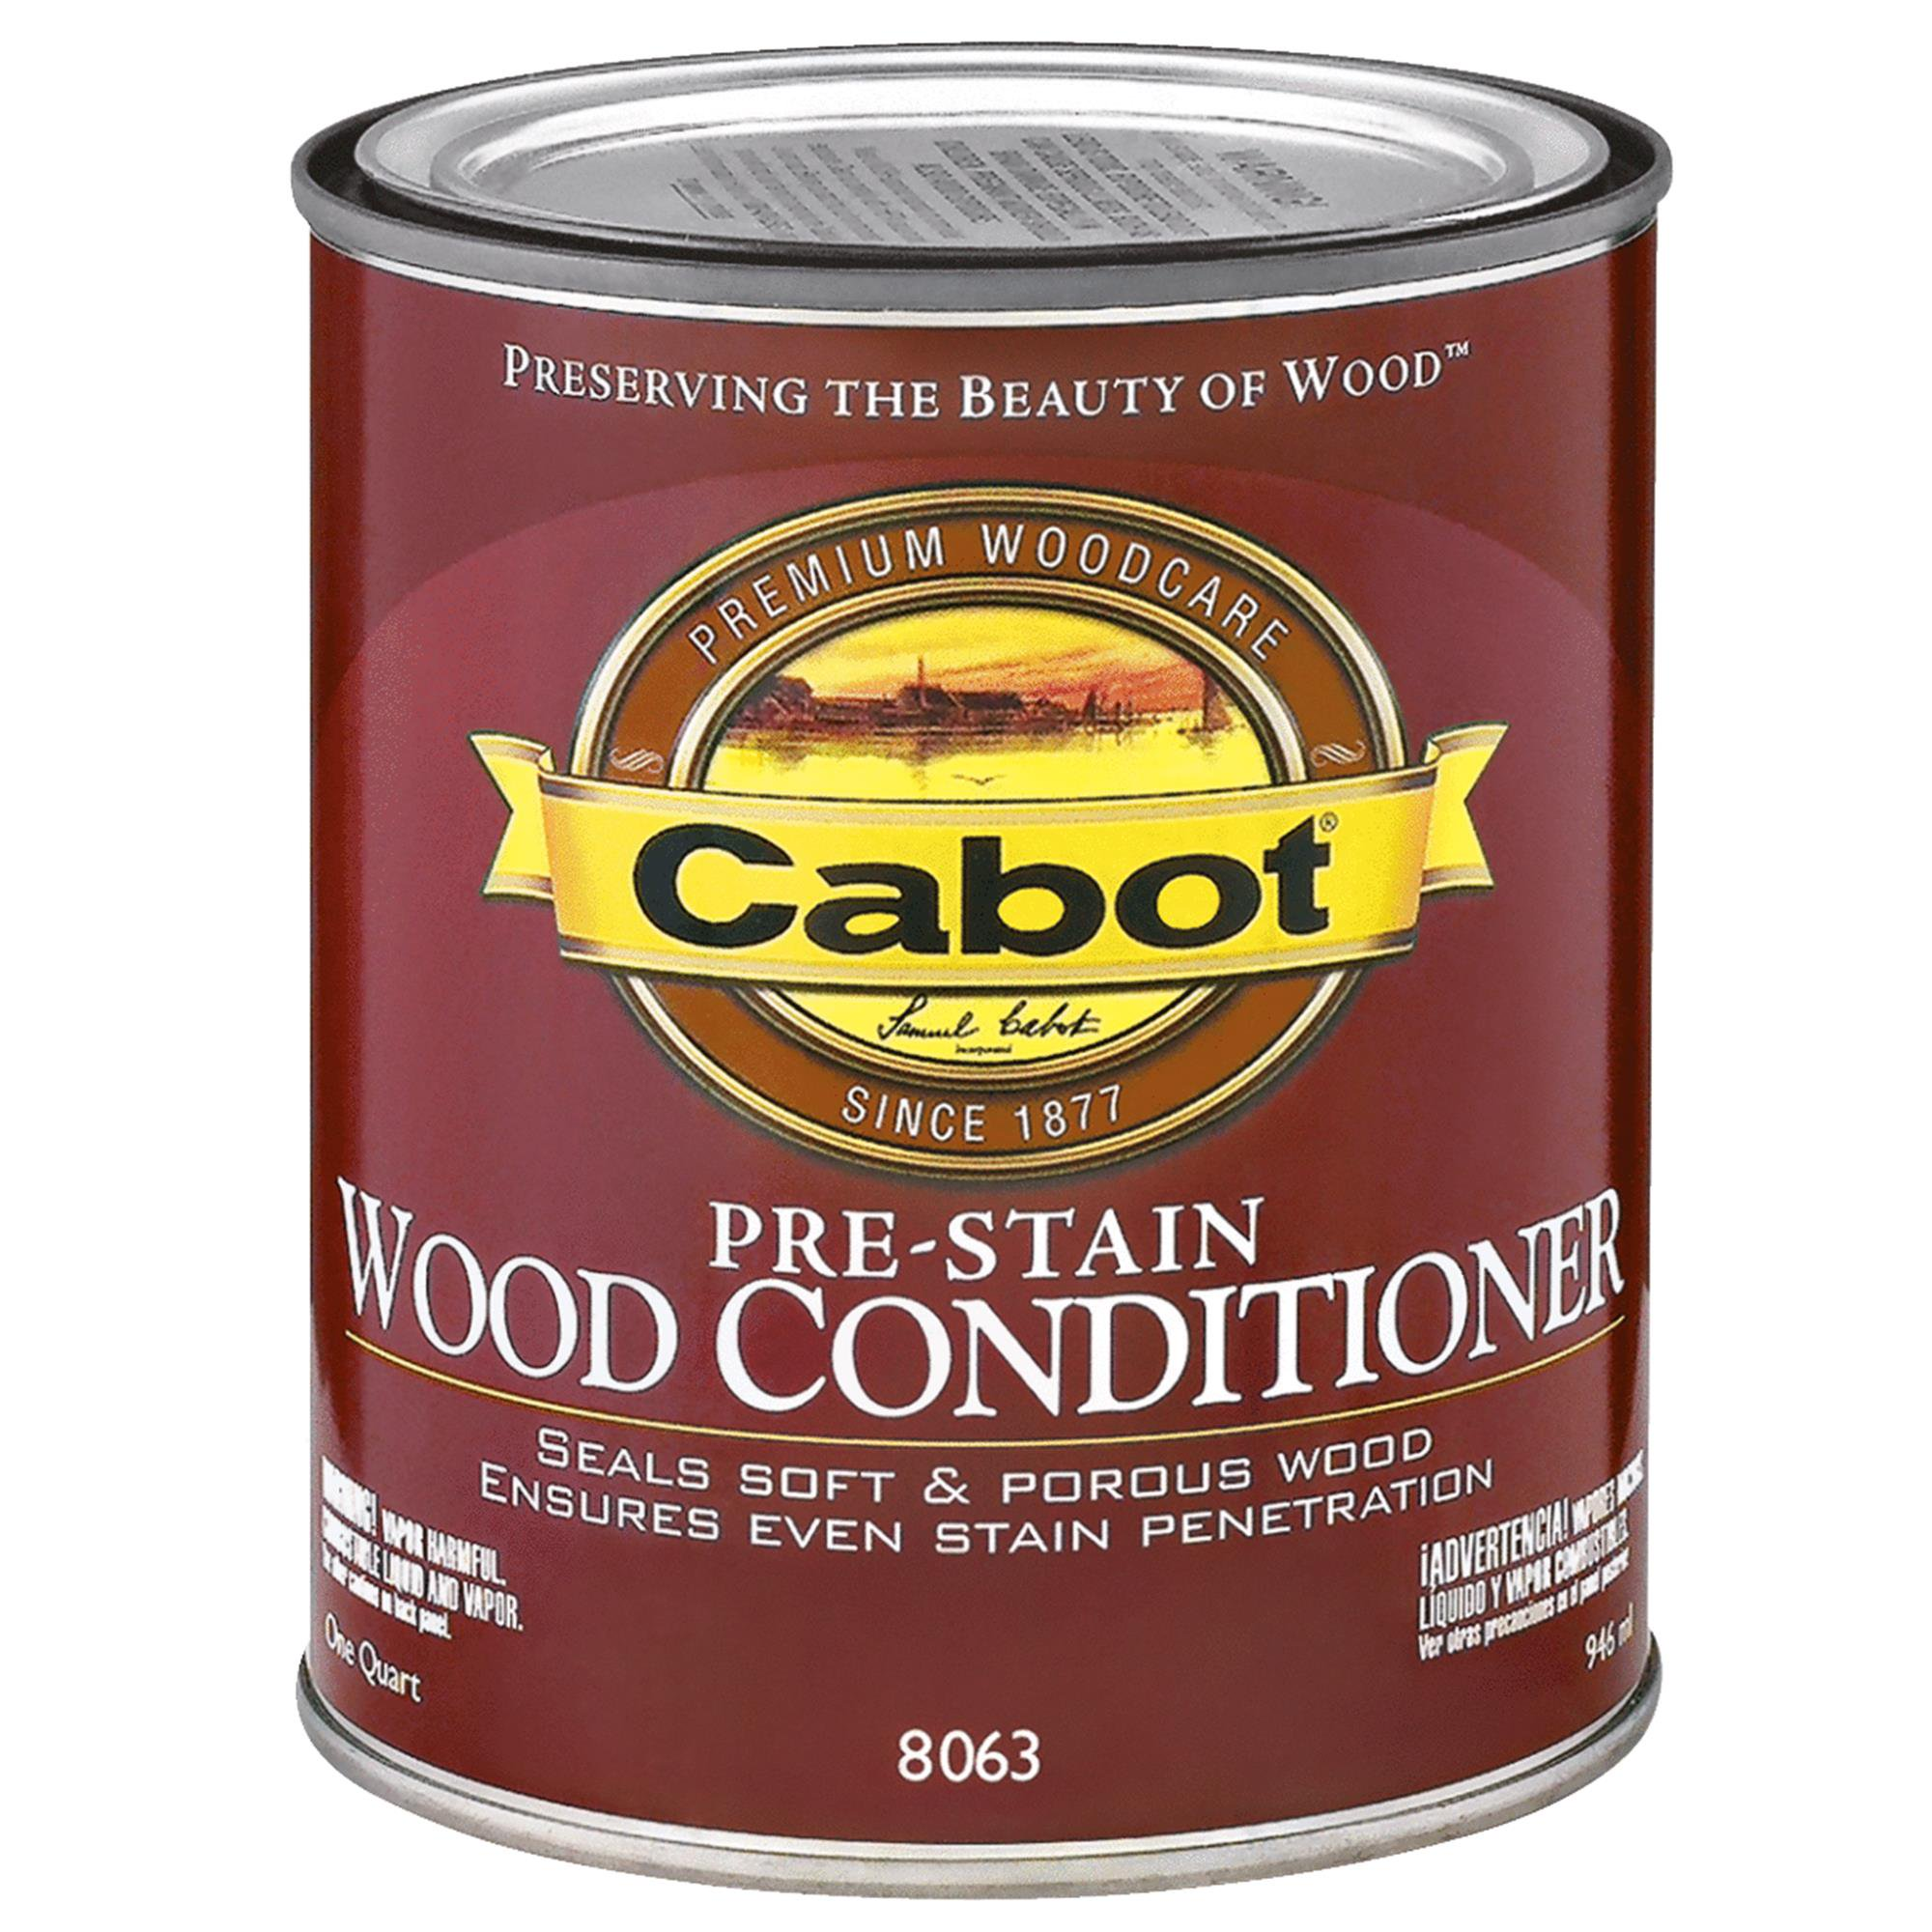 Cabot Pre-Stain Wood Conditioner